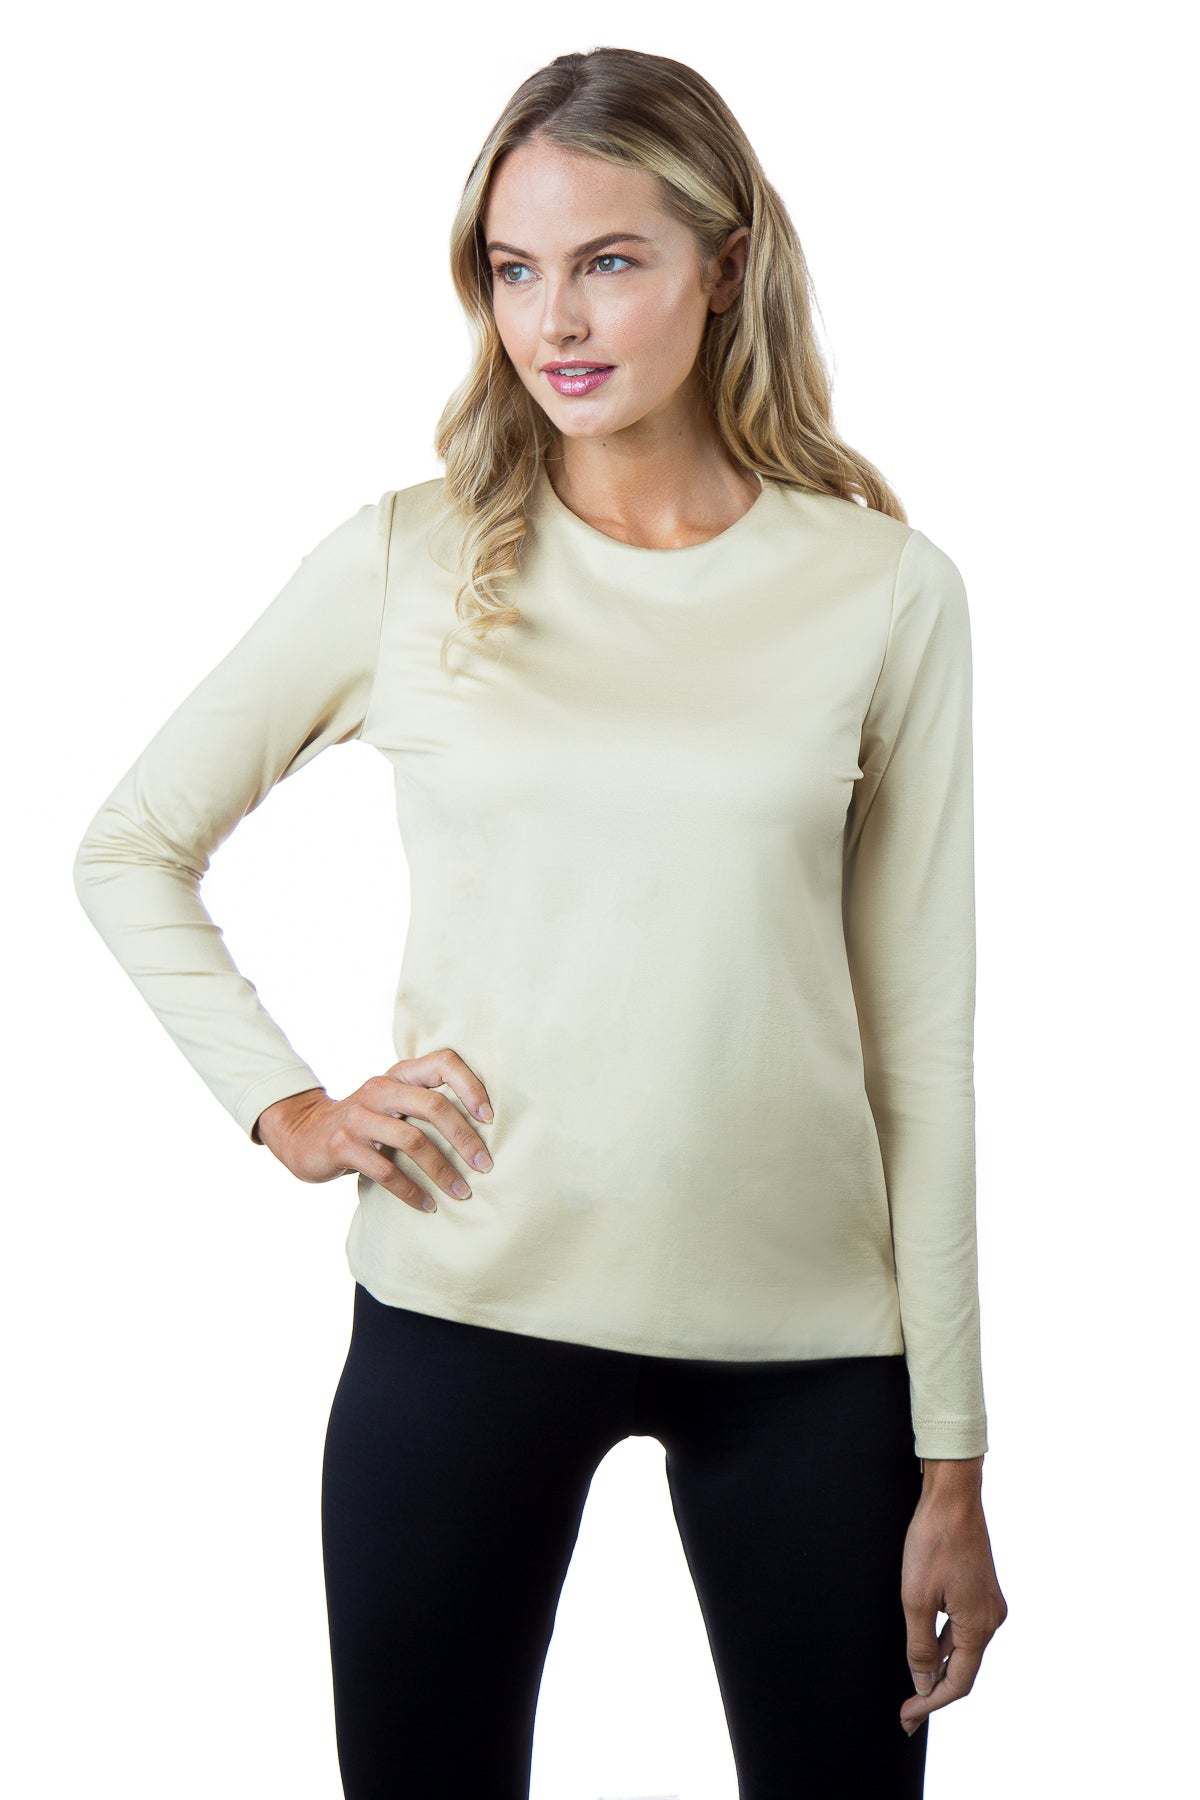 LIMITED COLORS: The Classic Long Sleeve